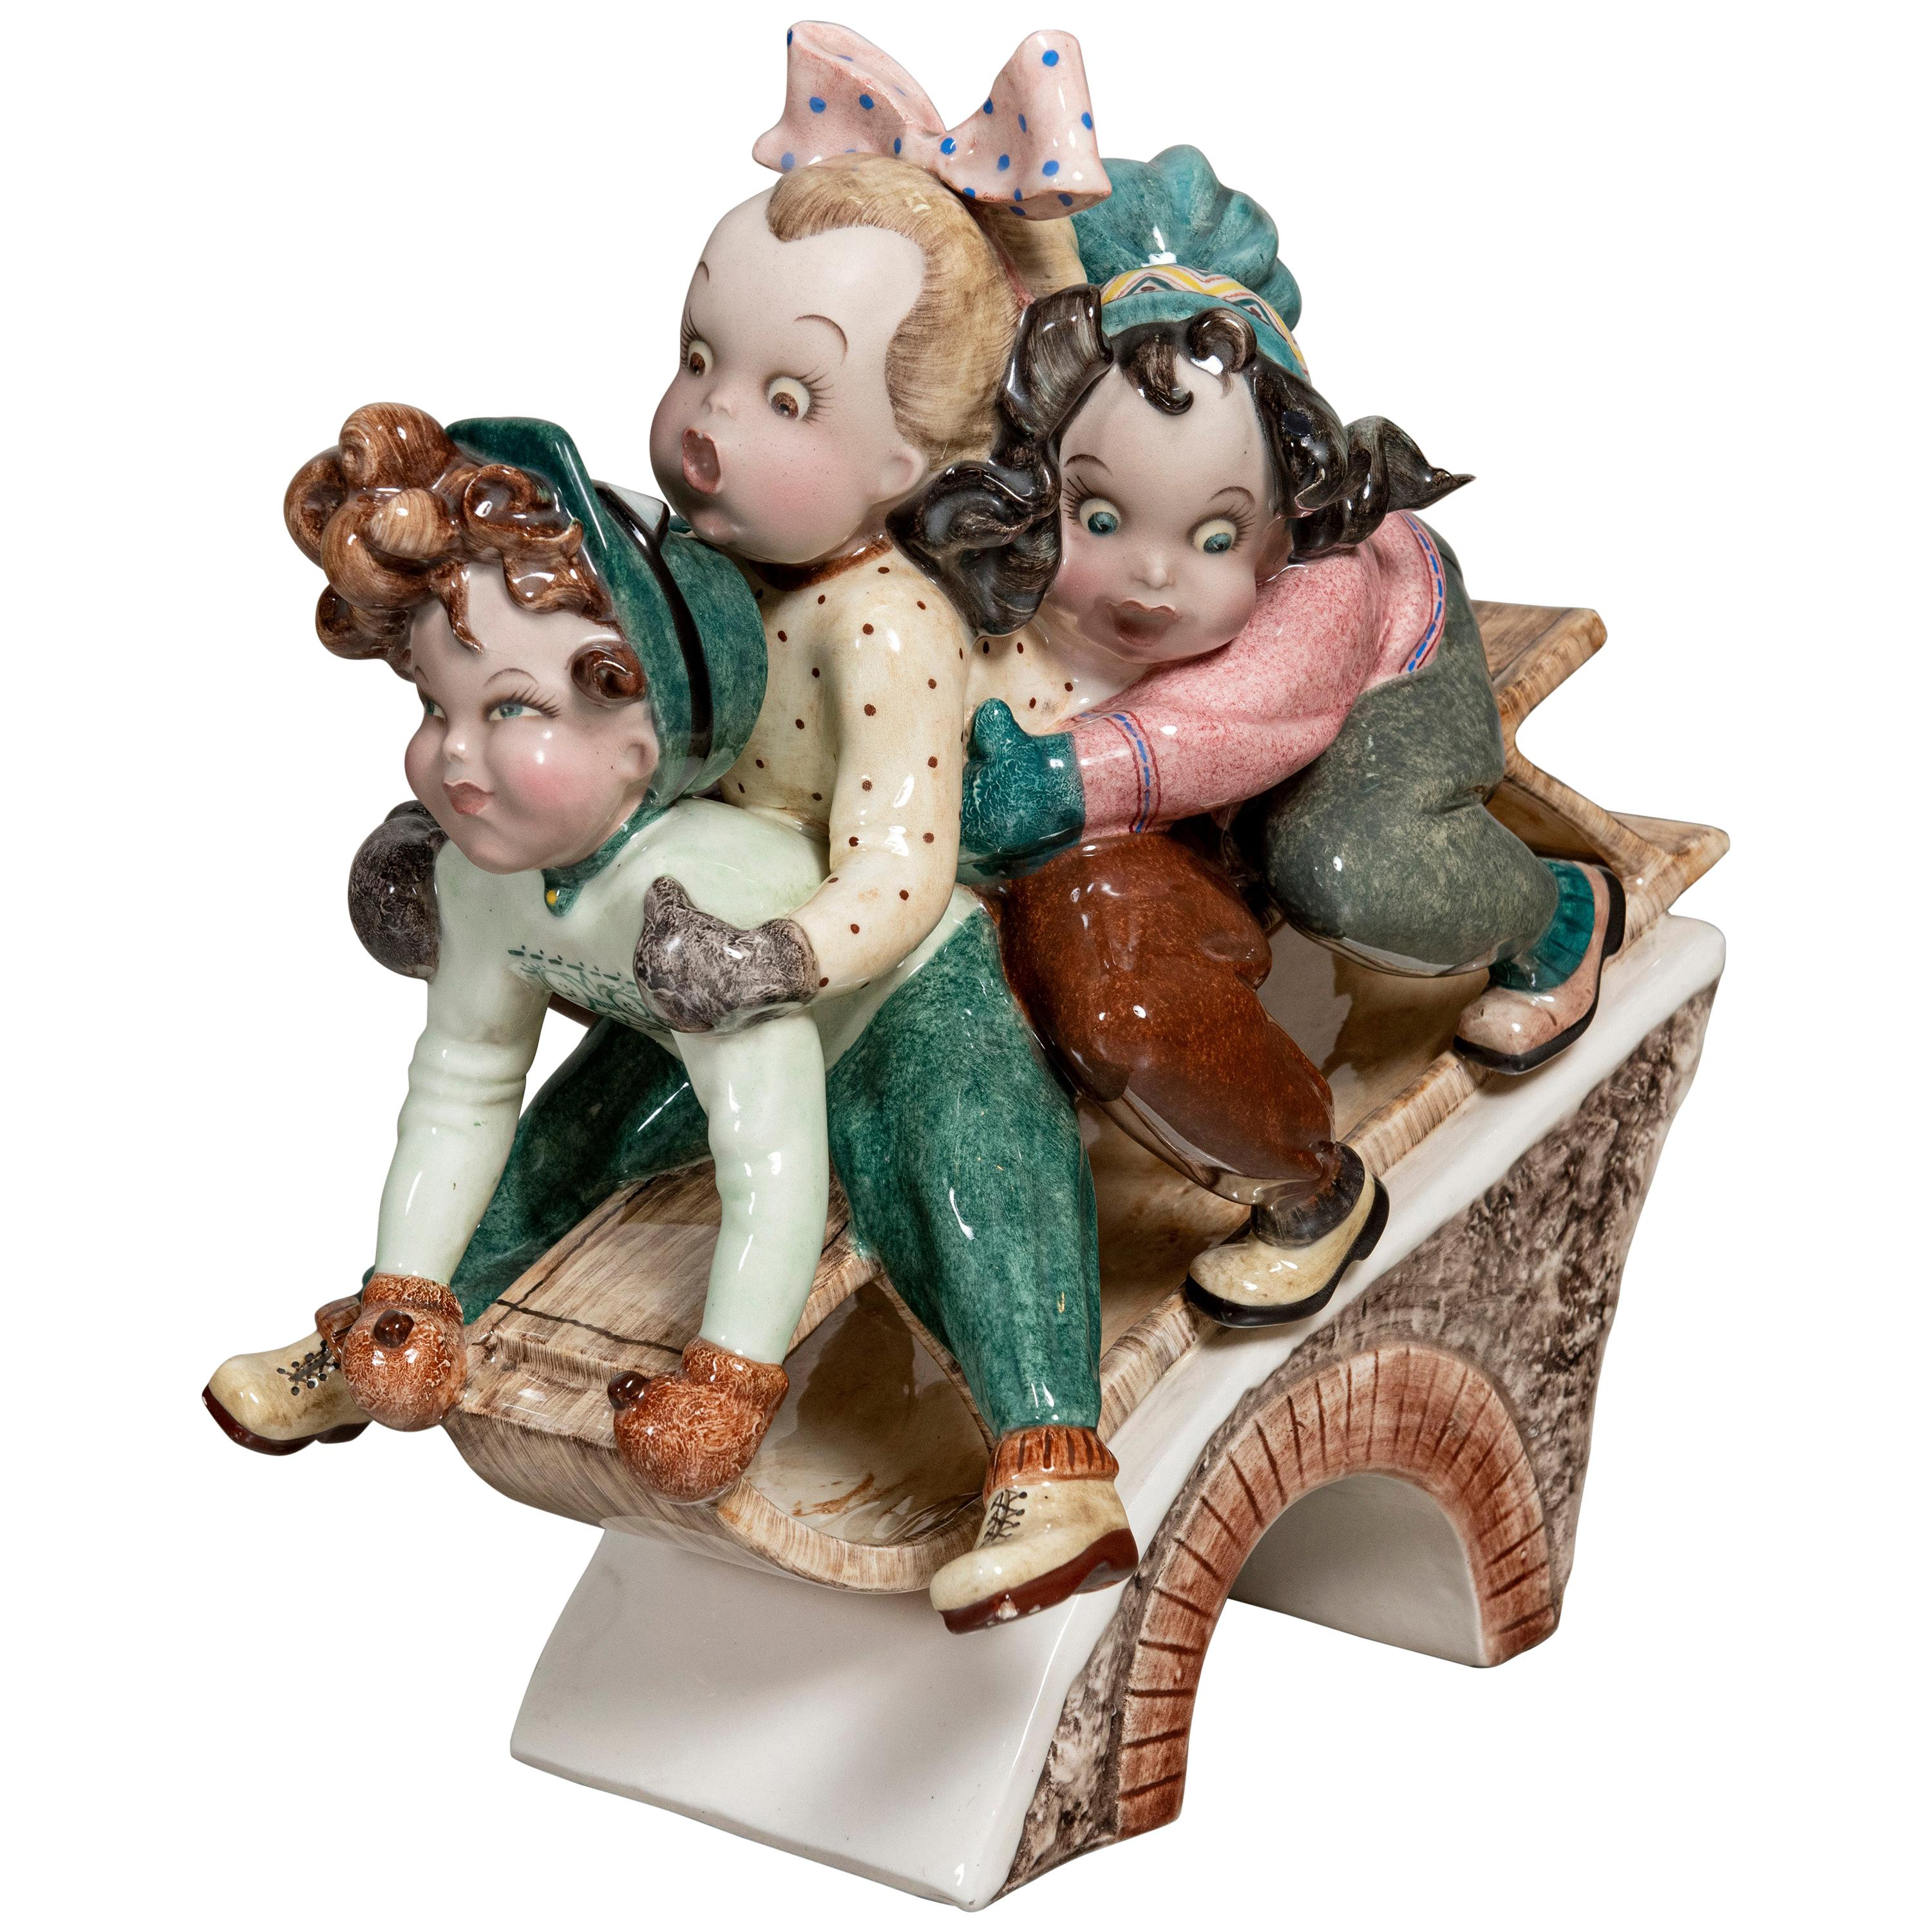 Painted Ceramic Sculpture by Tizziano Galli, Italy, circa 1940